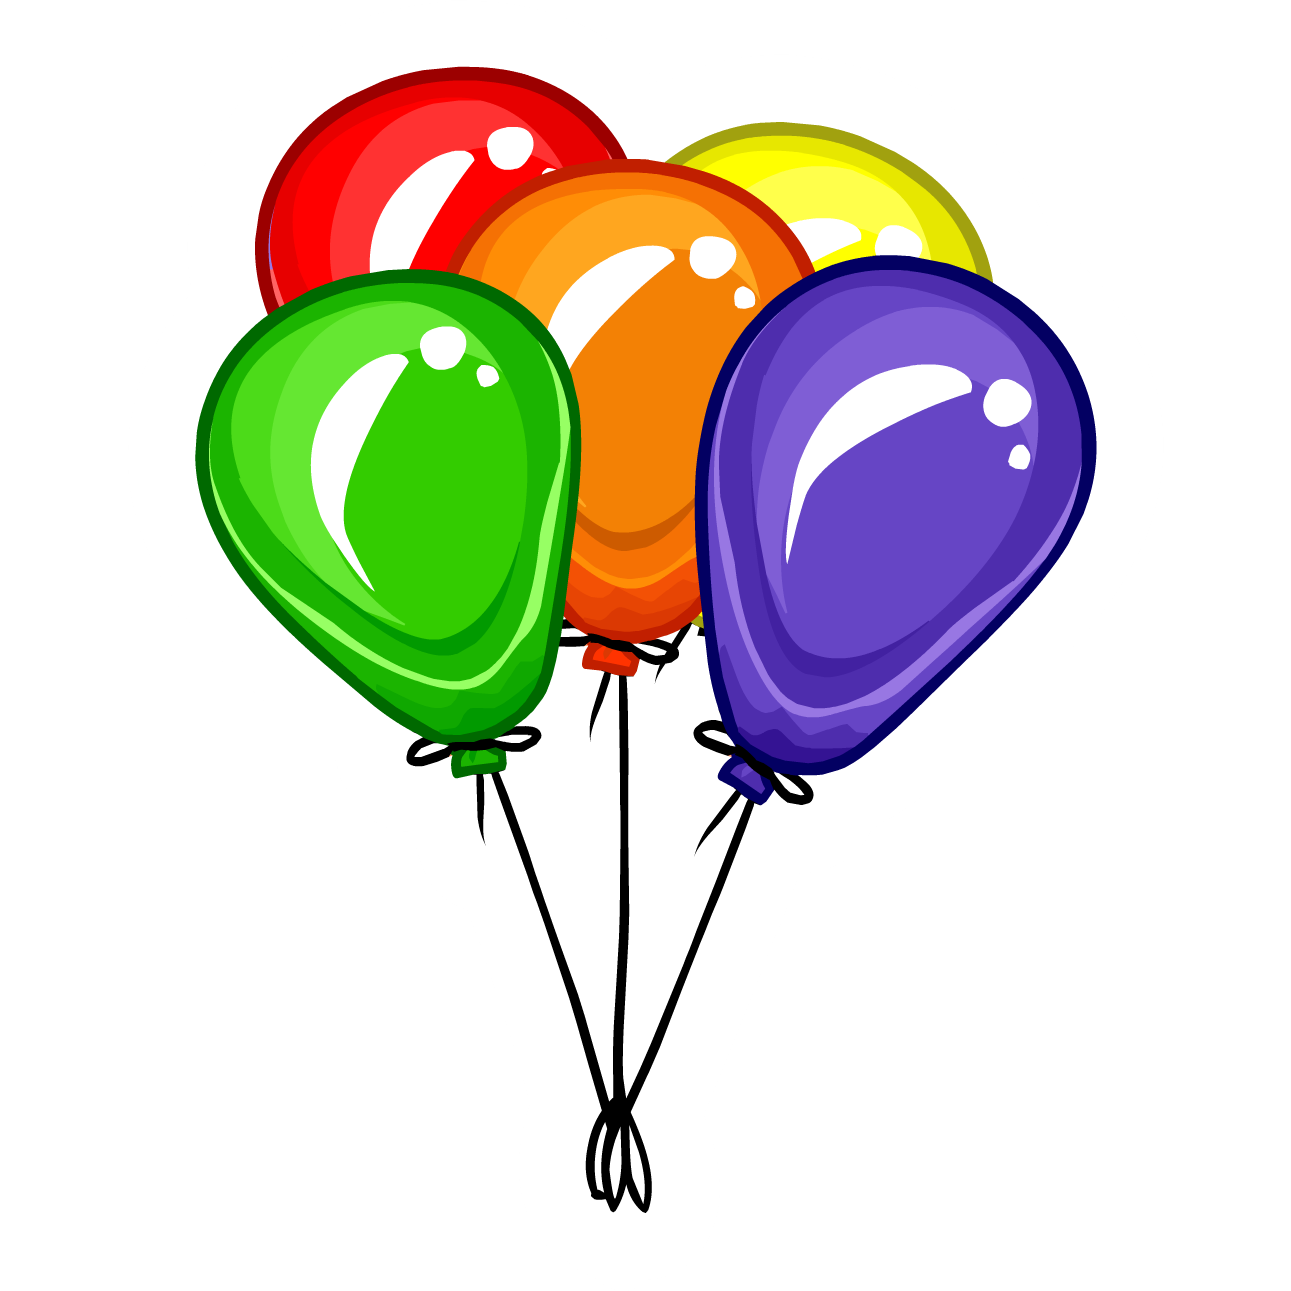 balloon bunch pin club penguin wiki fandom powered by igloo clip art white in middle igloo clip art black and white